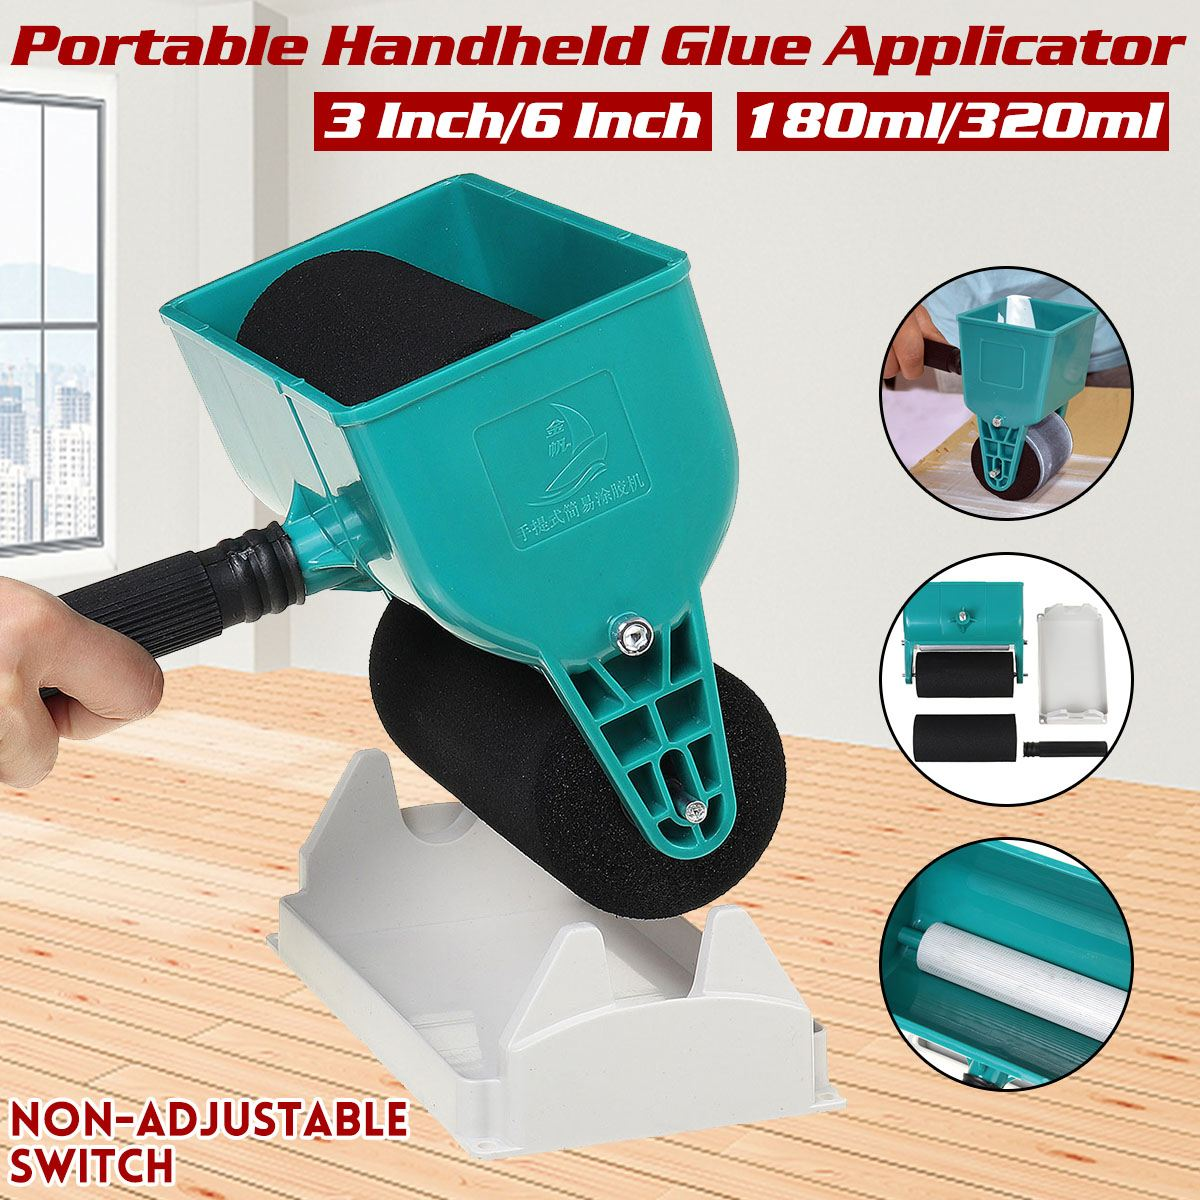 Manual Glue Machine Portable Handheld Glue Applicator Roller for Woodworking